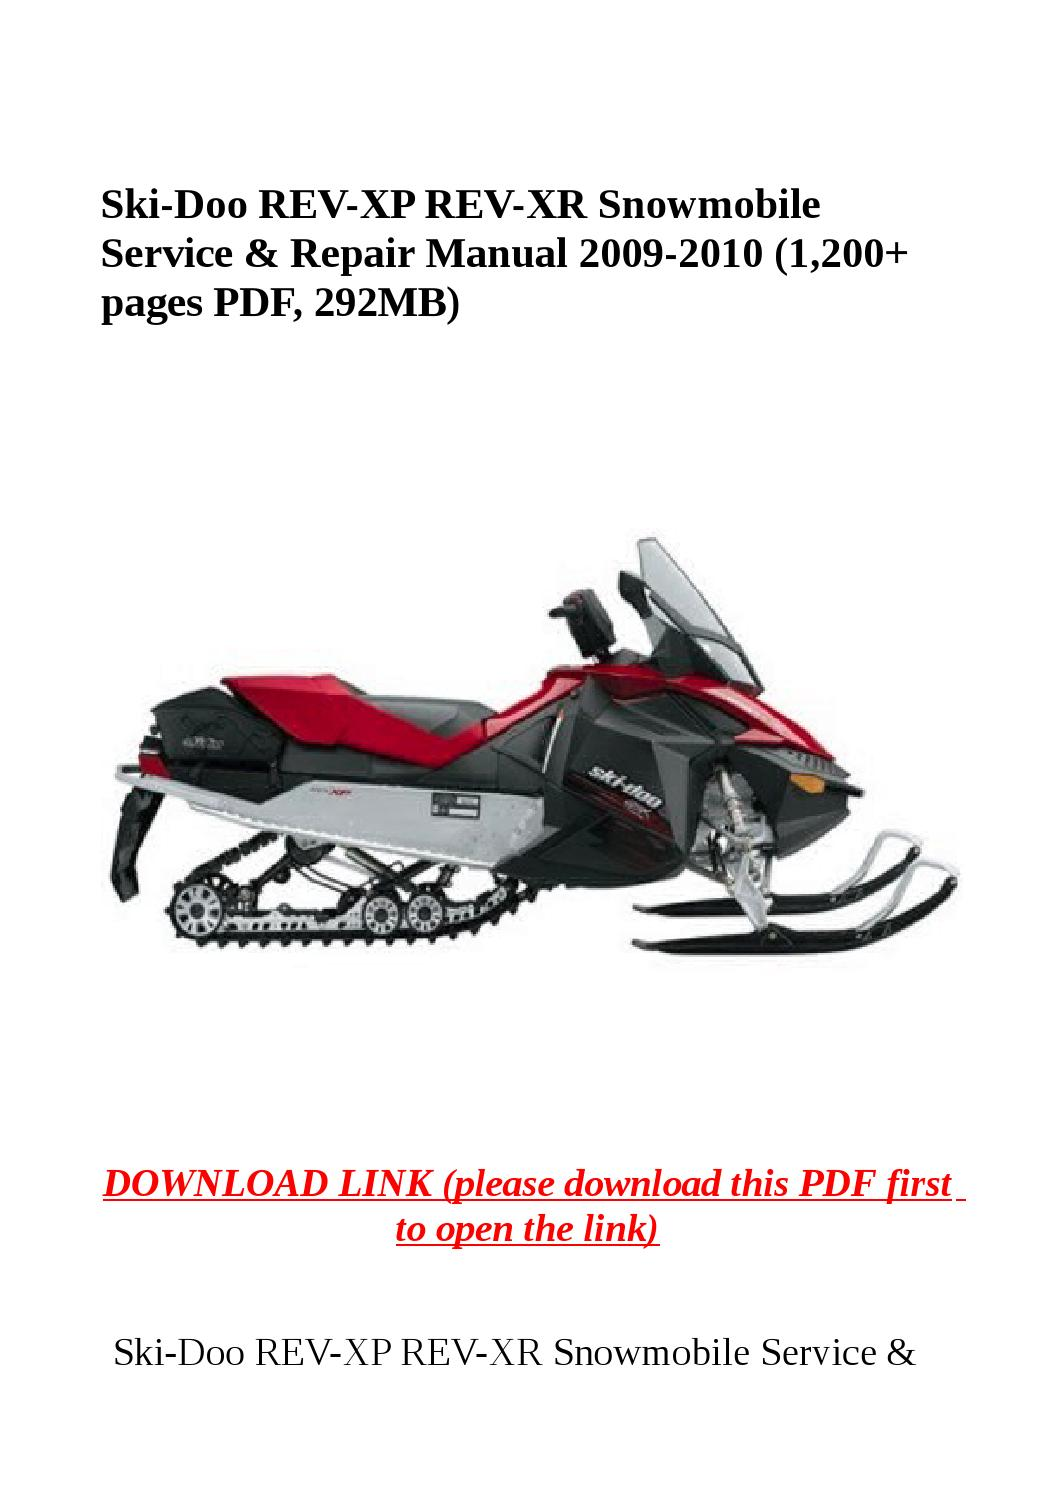 Ski doo rev xp rev xr snowmobile service & repair manual 2009 2010 (1,200  pages pdf, 292mb) by herrg - issuu